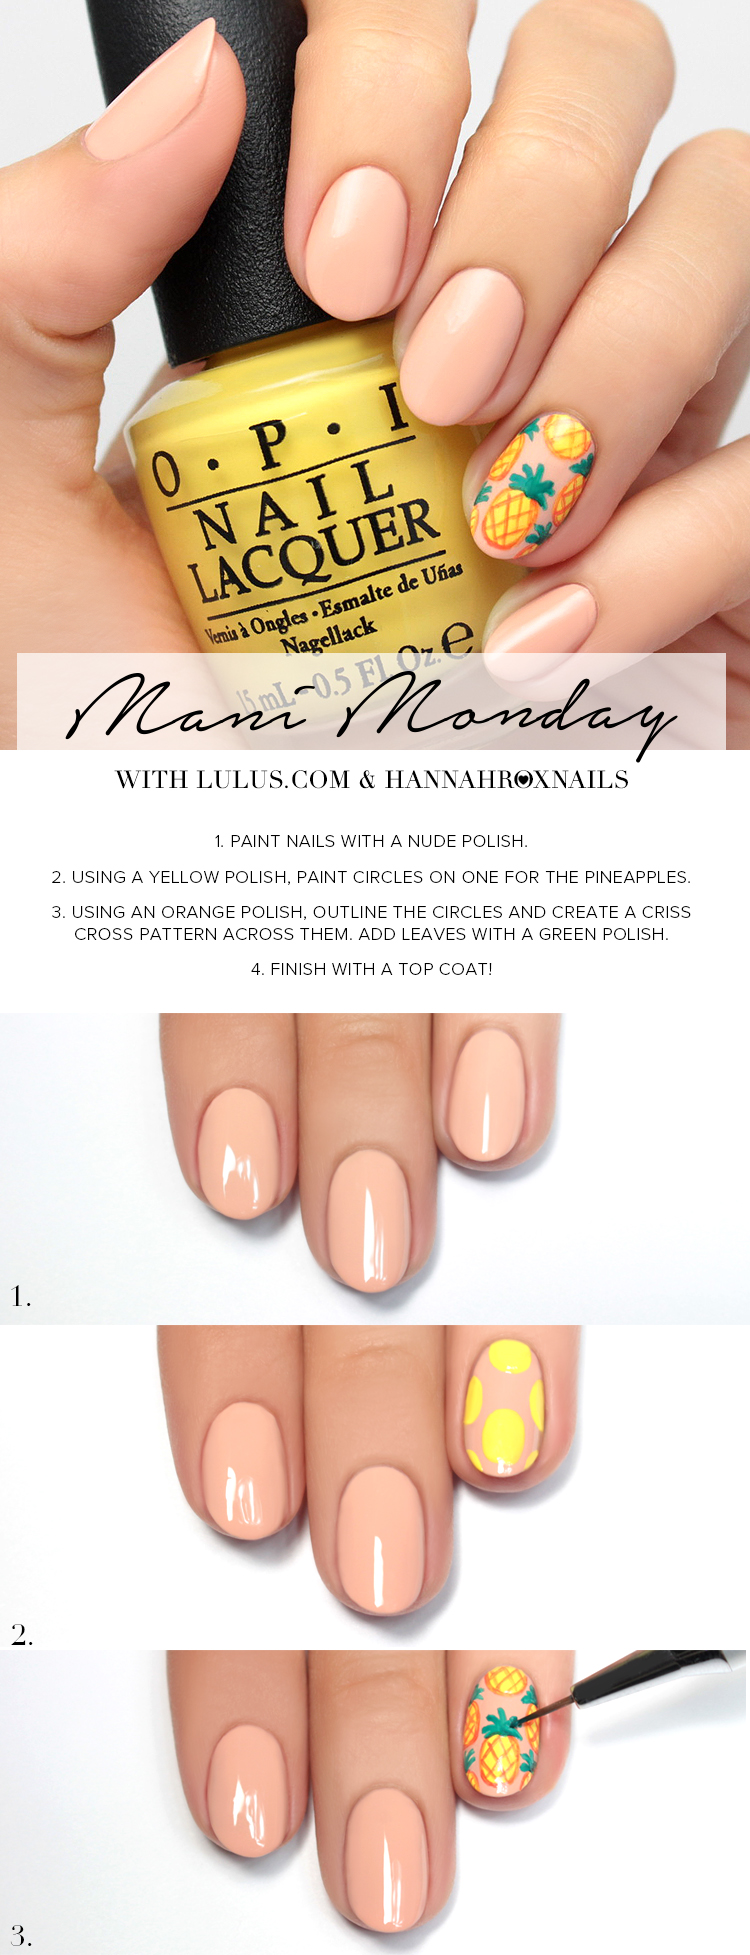 Nude with Pineapple Accent Nail